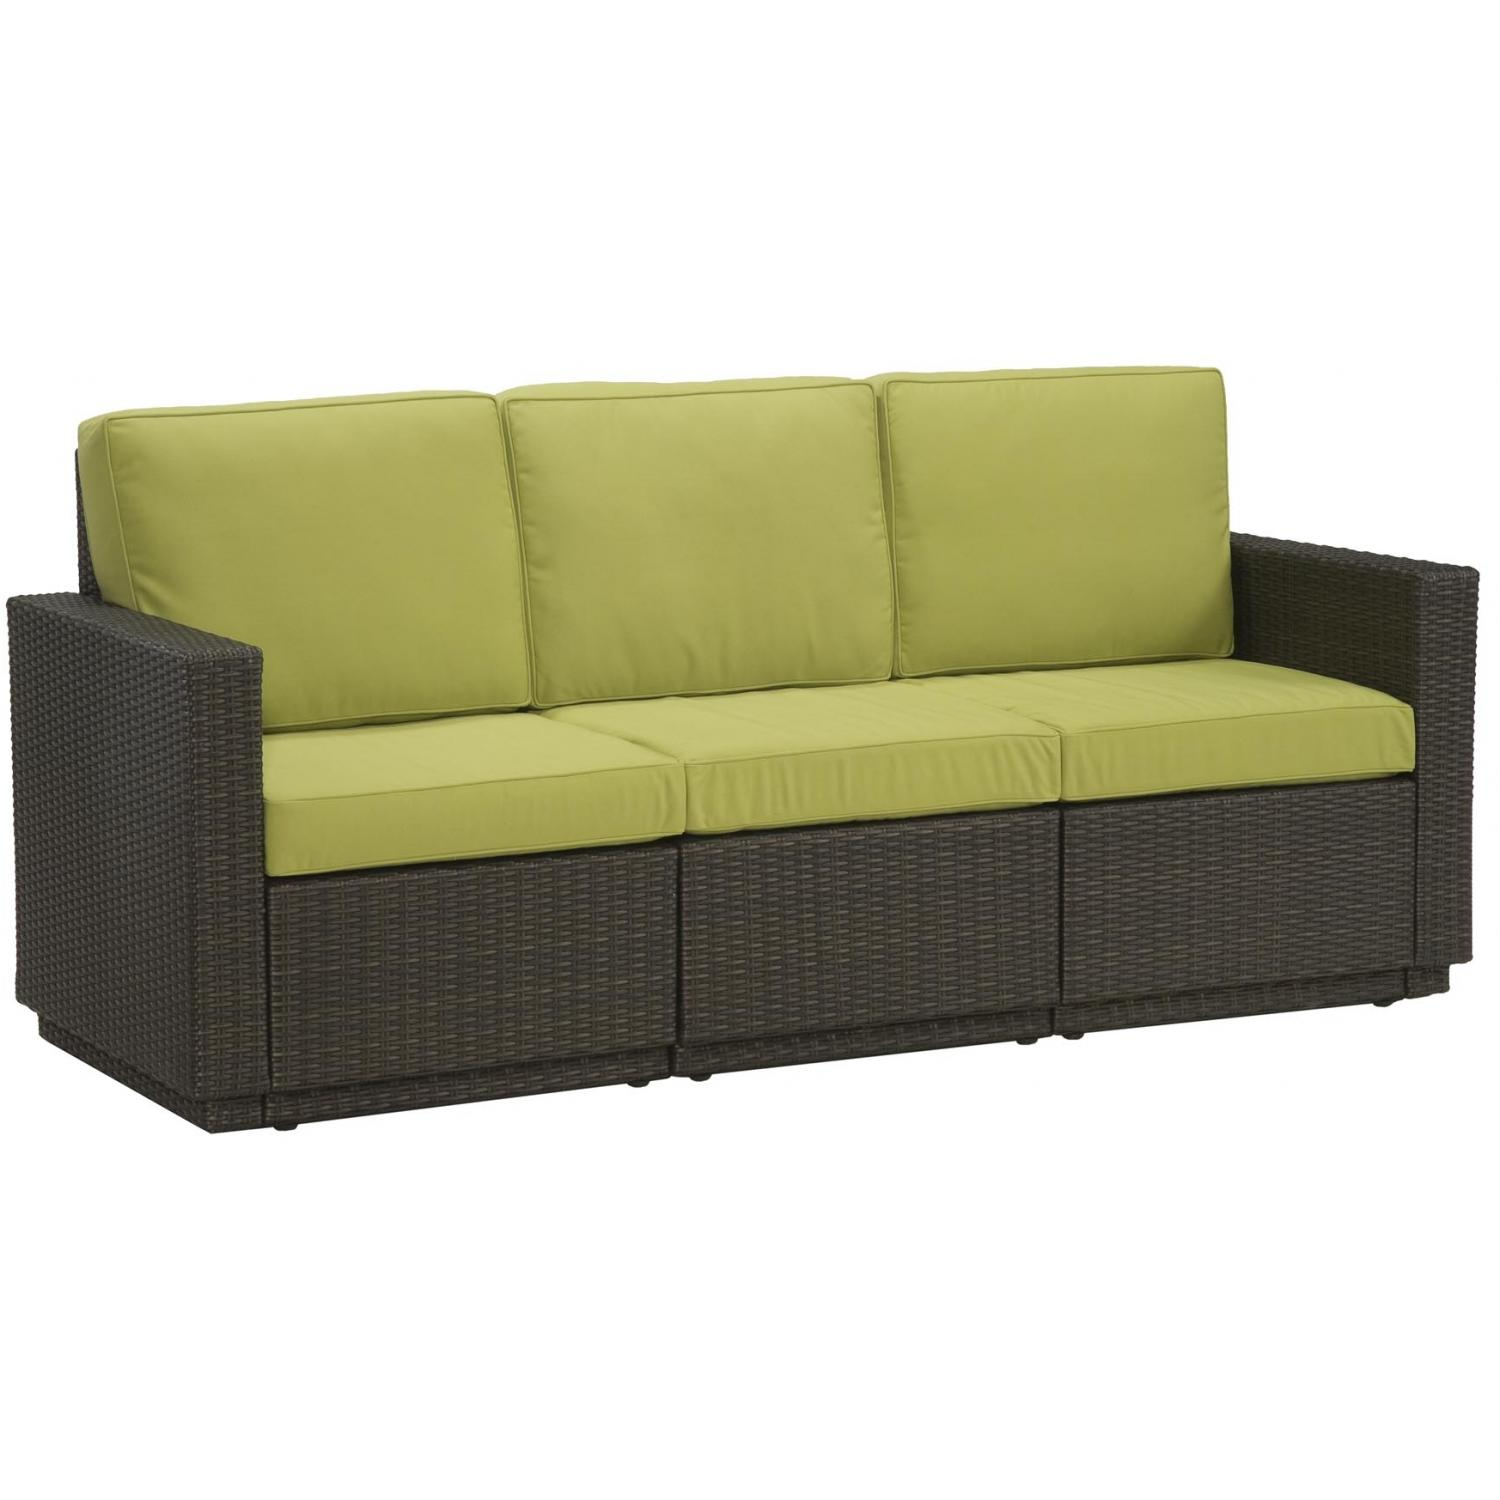 Furniture living room furniture sofa 3 seat for Furniture 888 formerly green apple